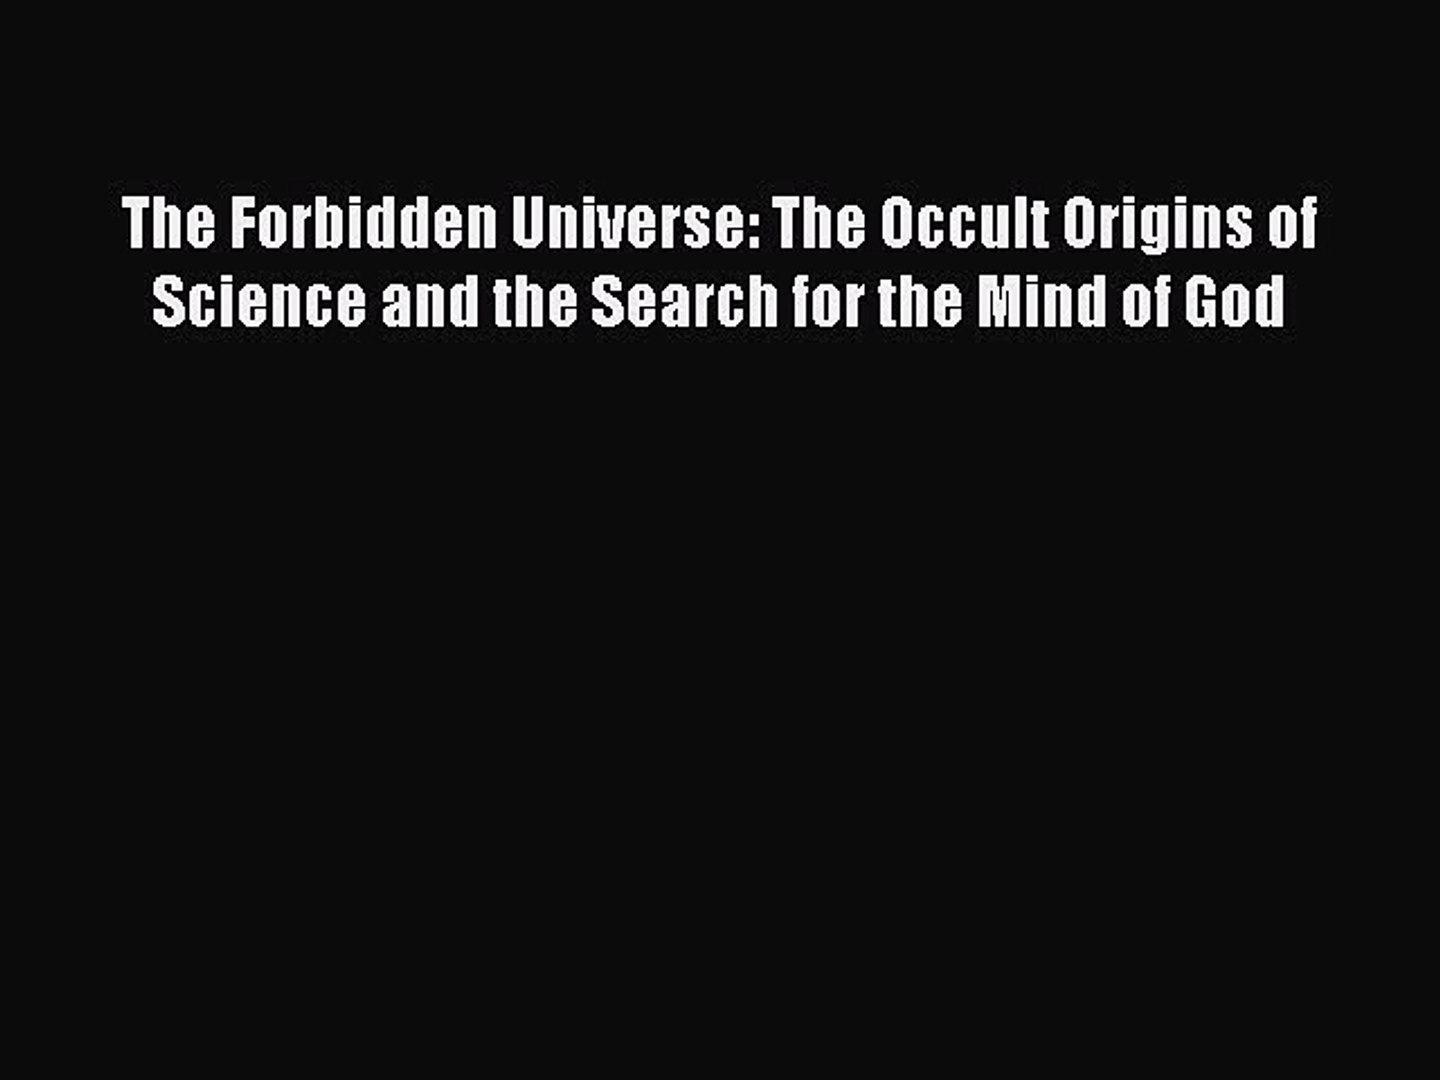 The Occult Origins of Science and the Search for the Mind of God